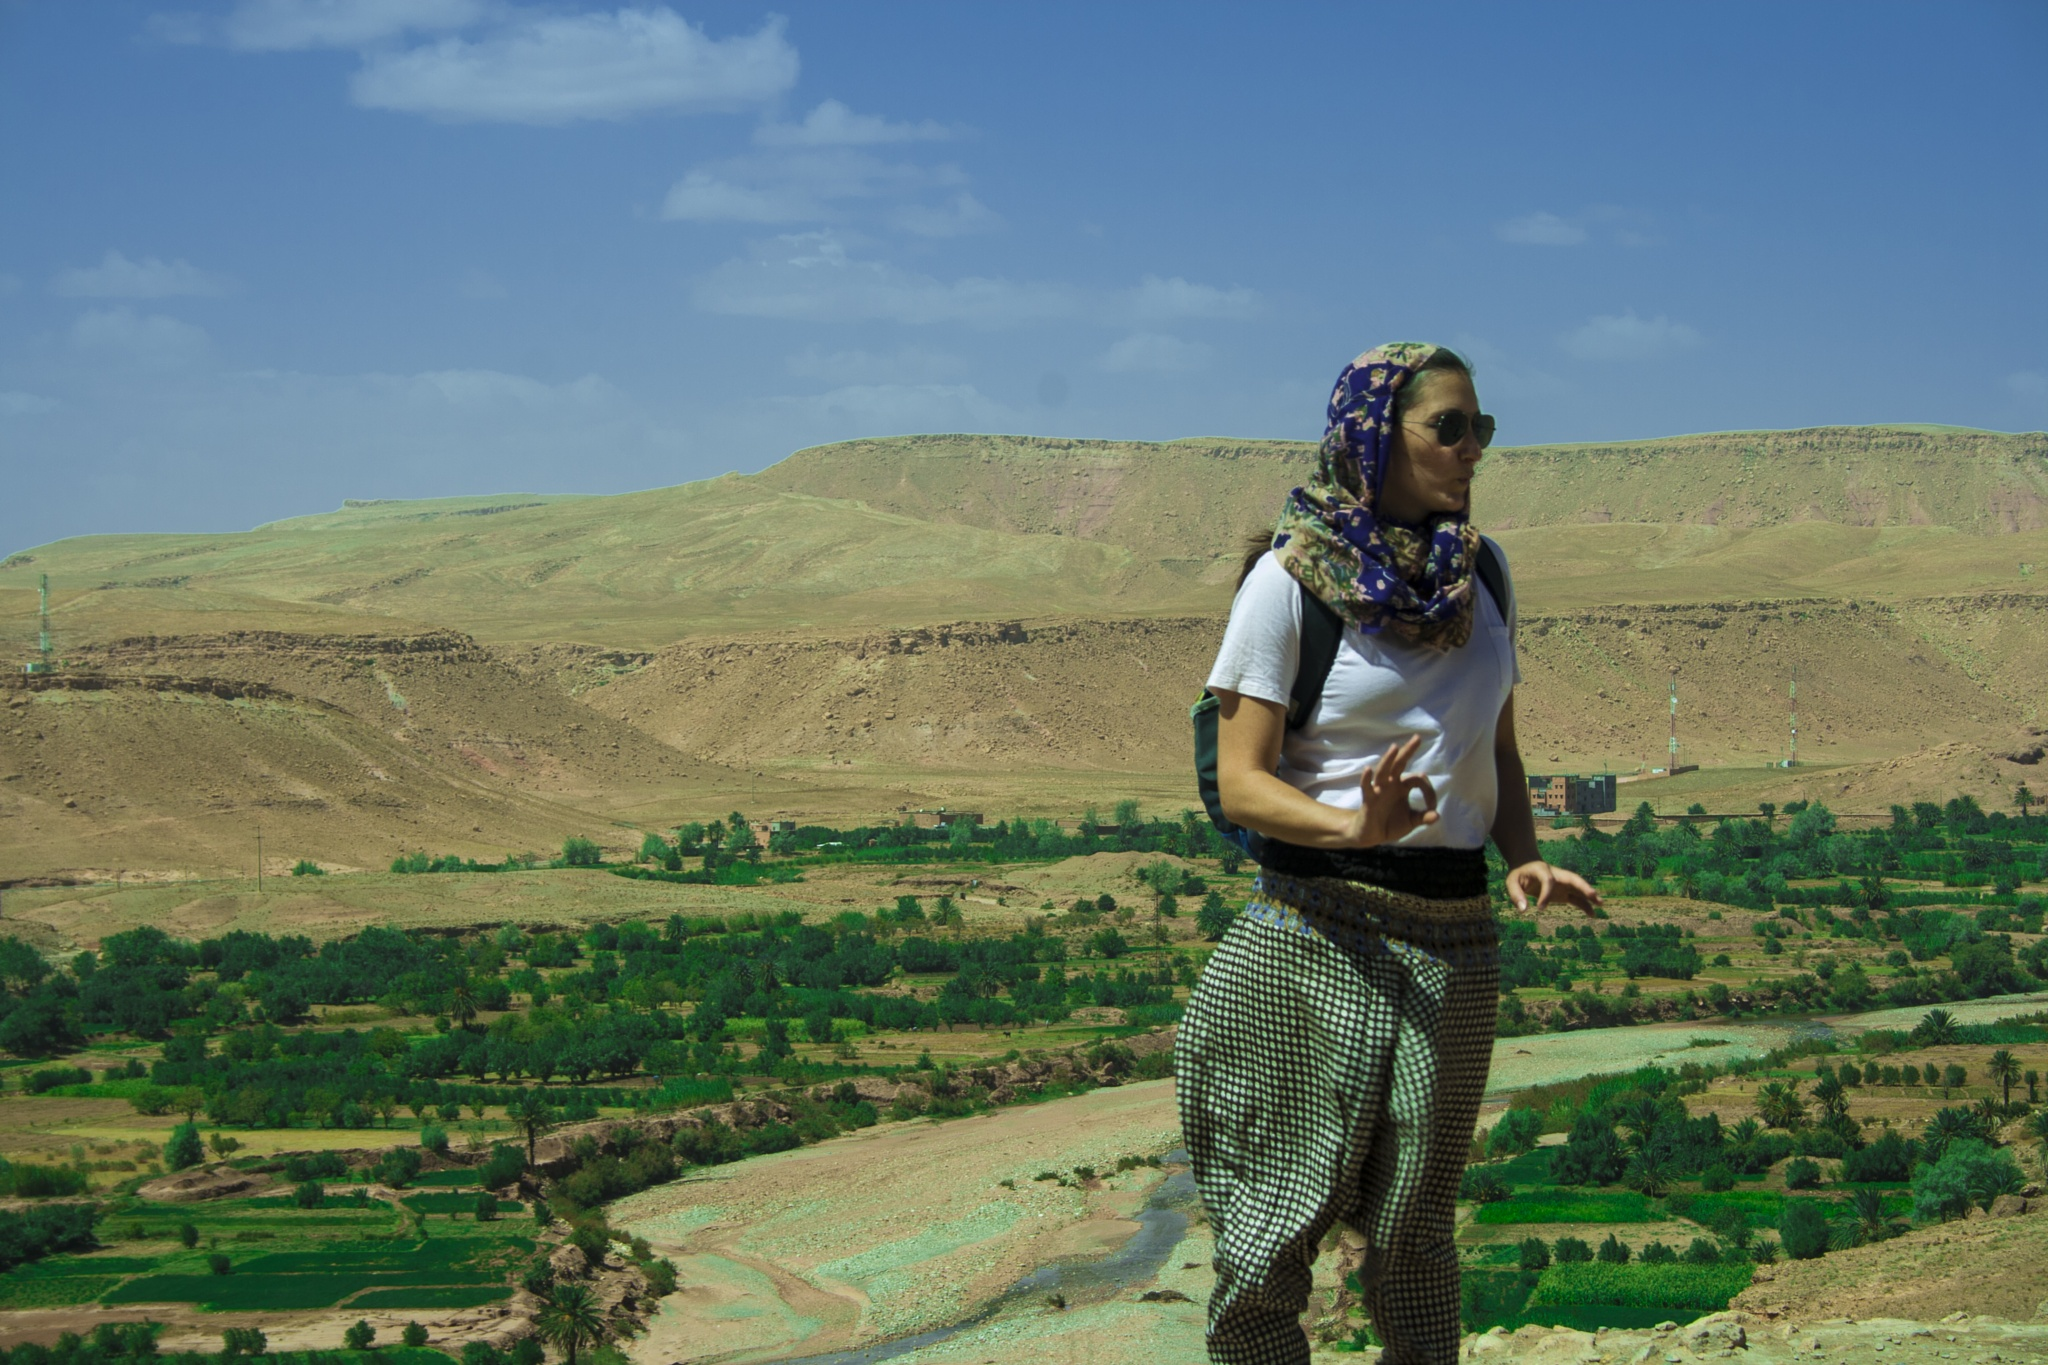 ait ben hadou  by ahbmed